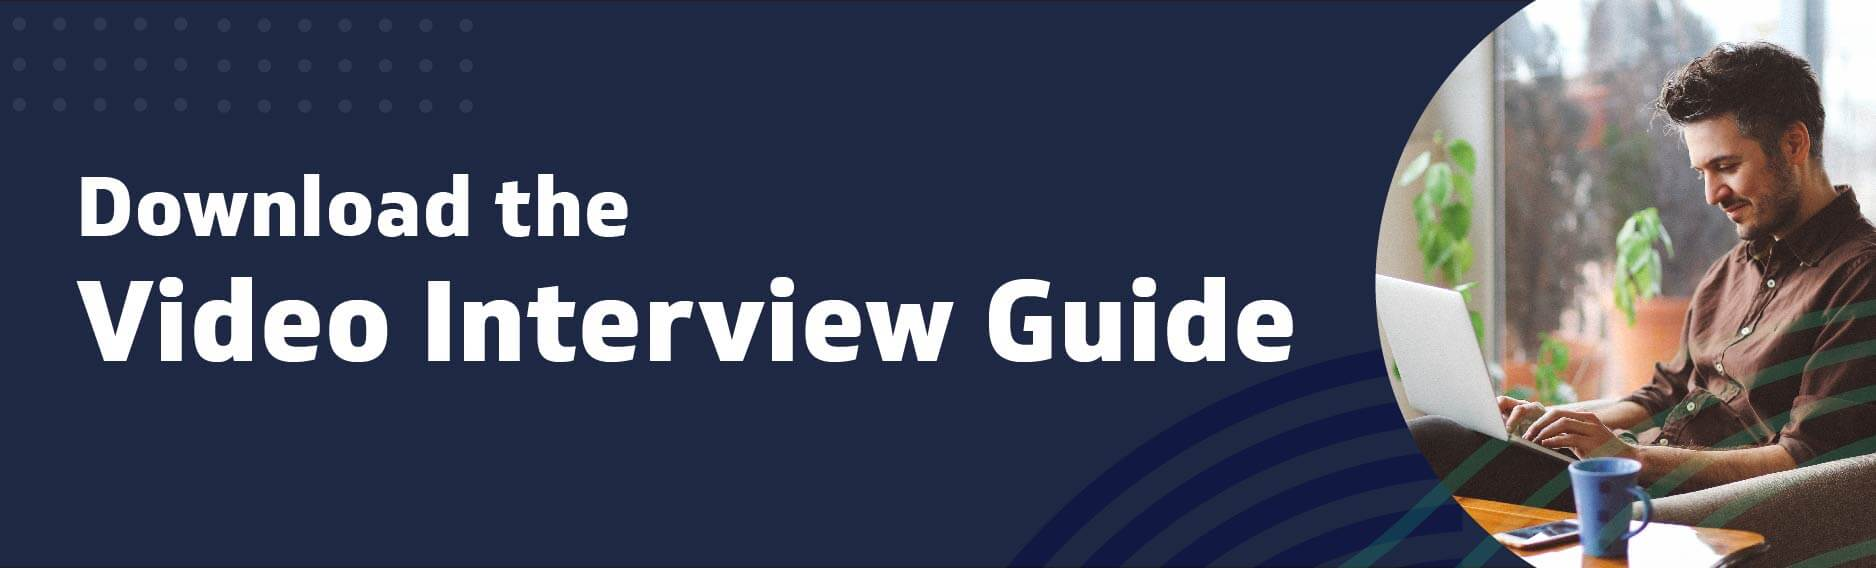 Download the Video Interview Guide